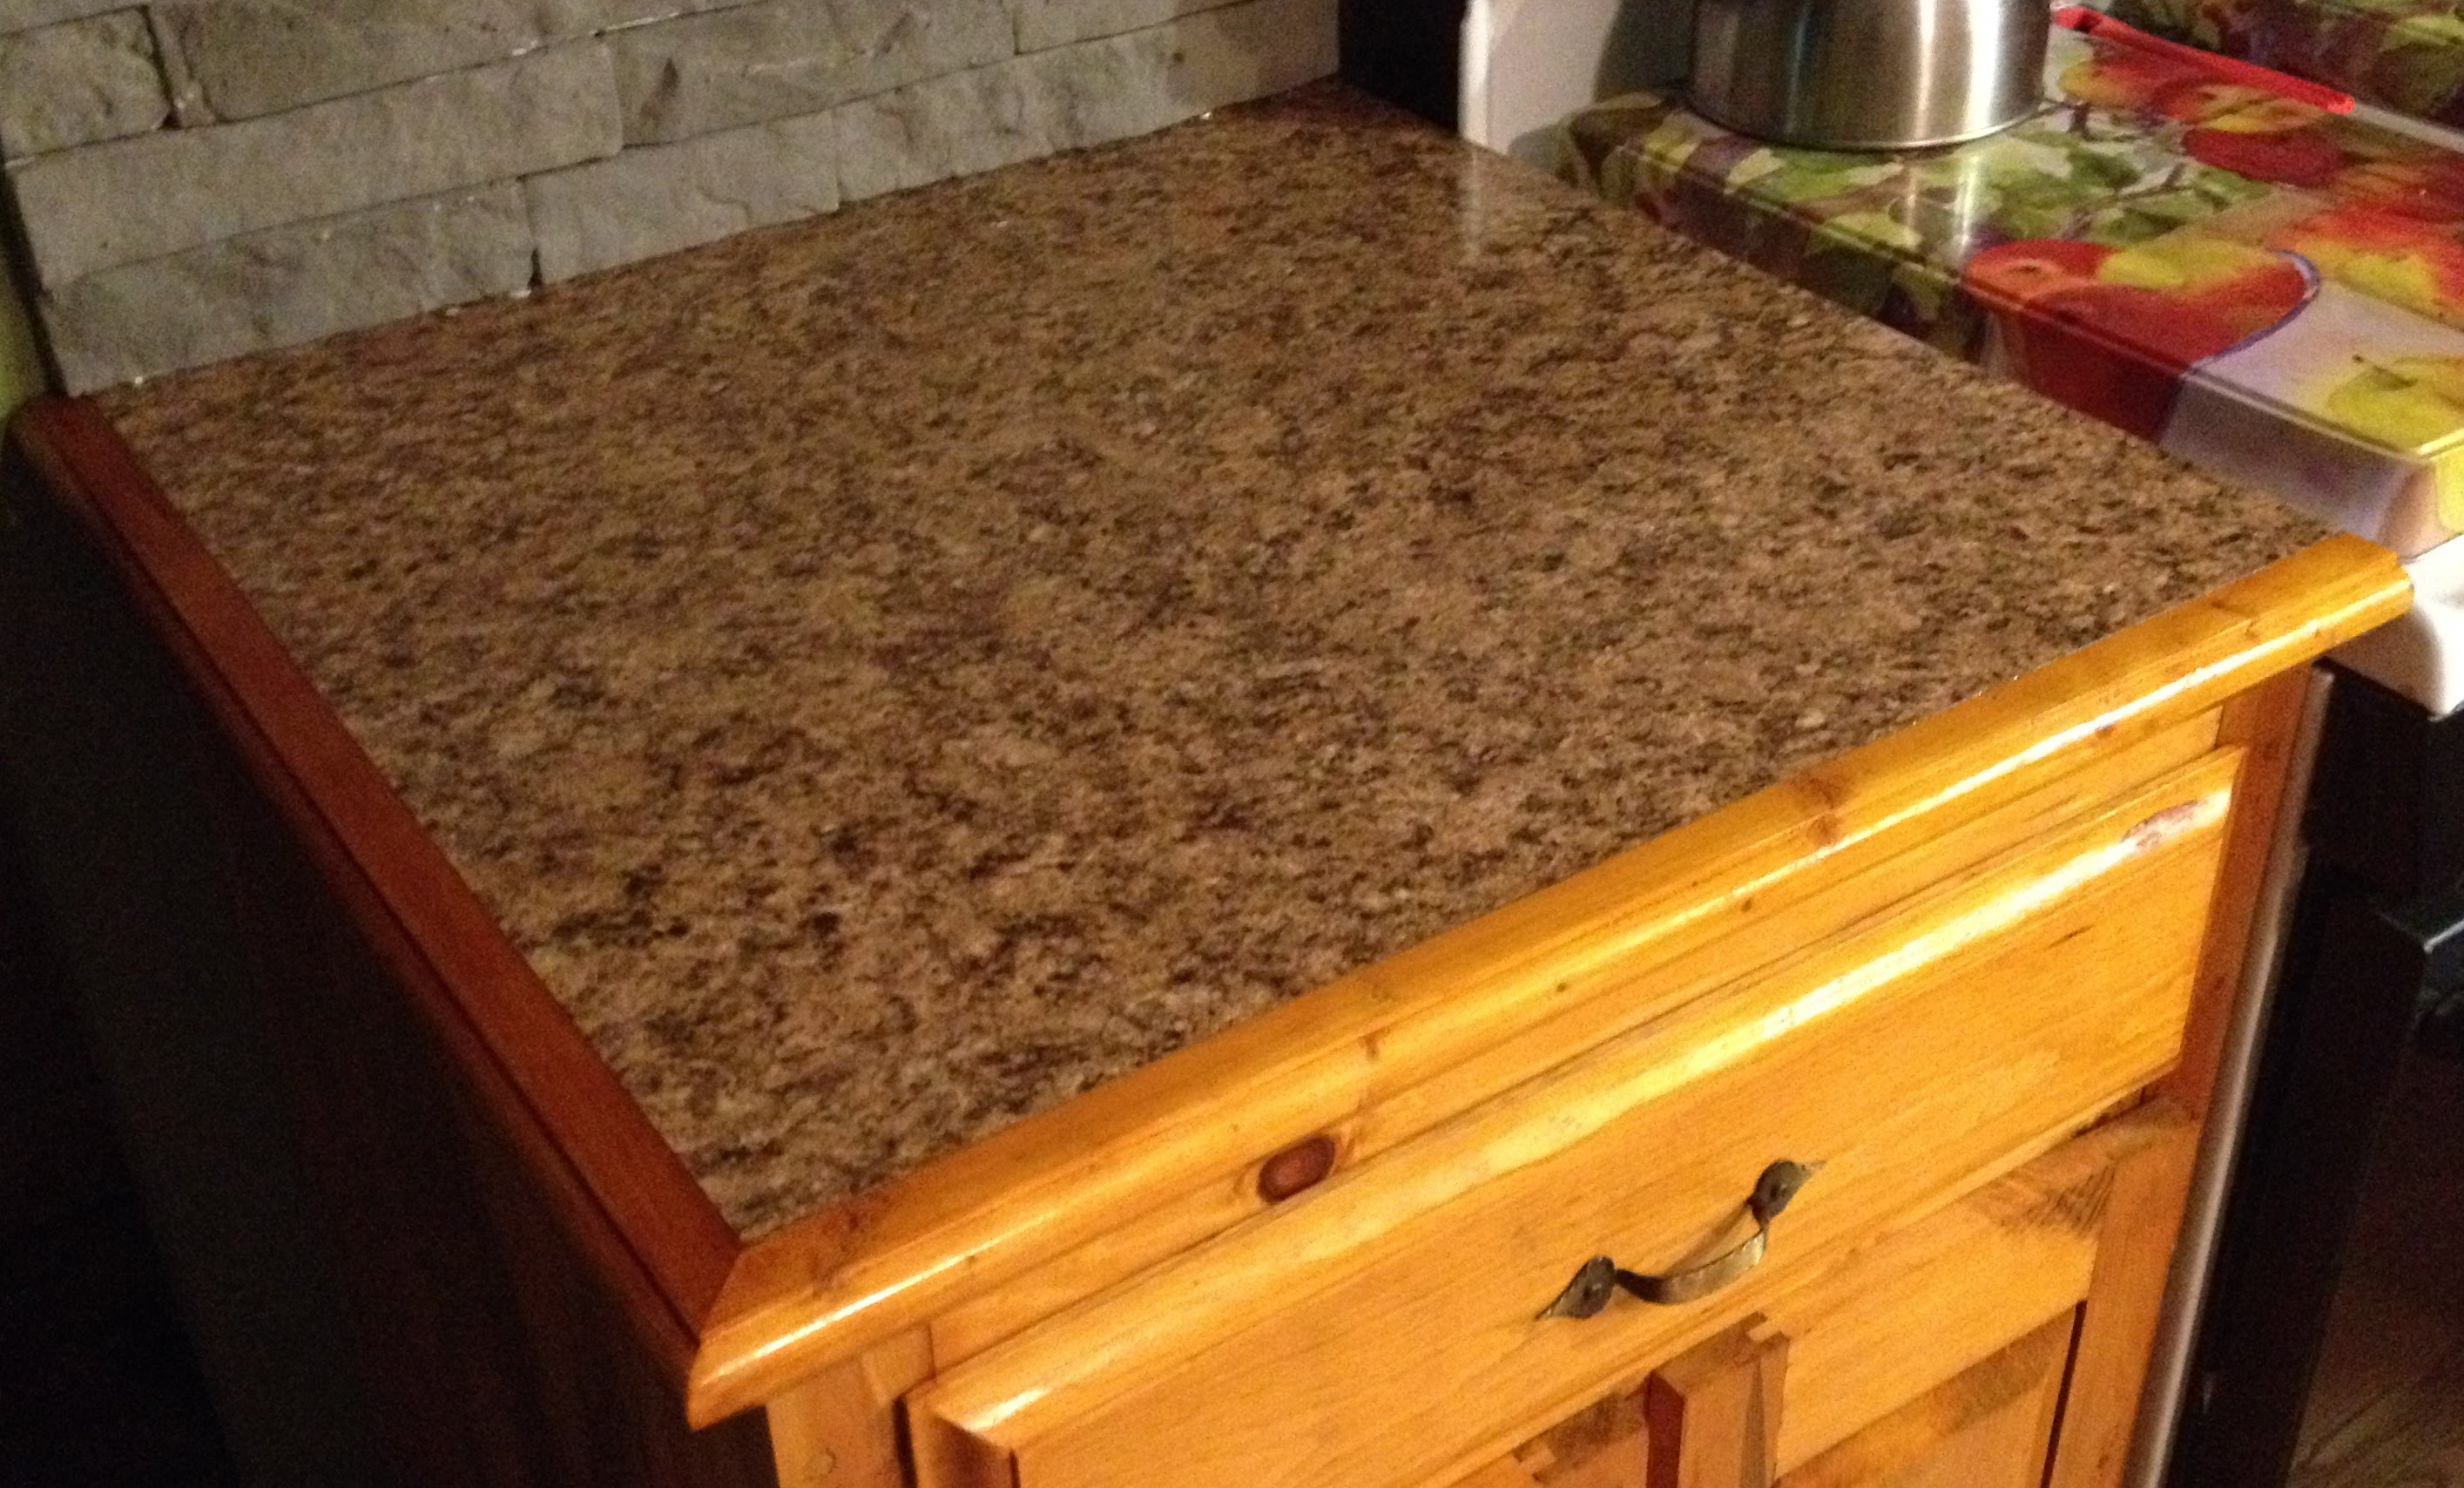 How To Build A Laminate Countertop 20 Ideas For Installing A Wooden Countertop At Your Home